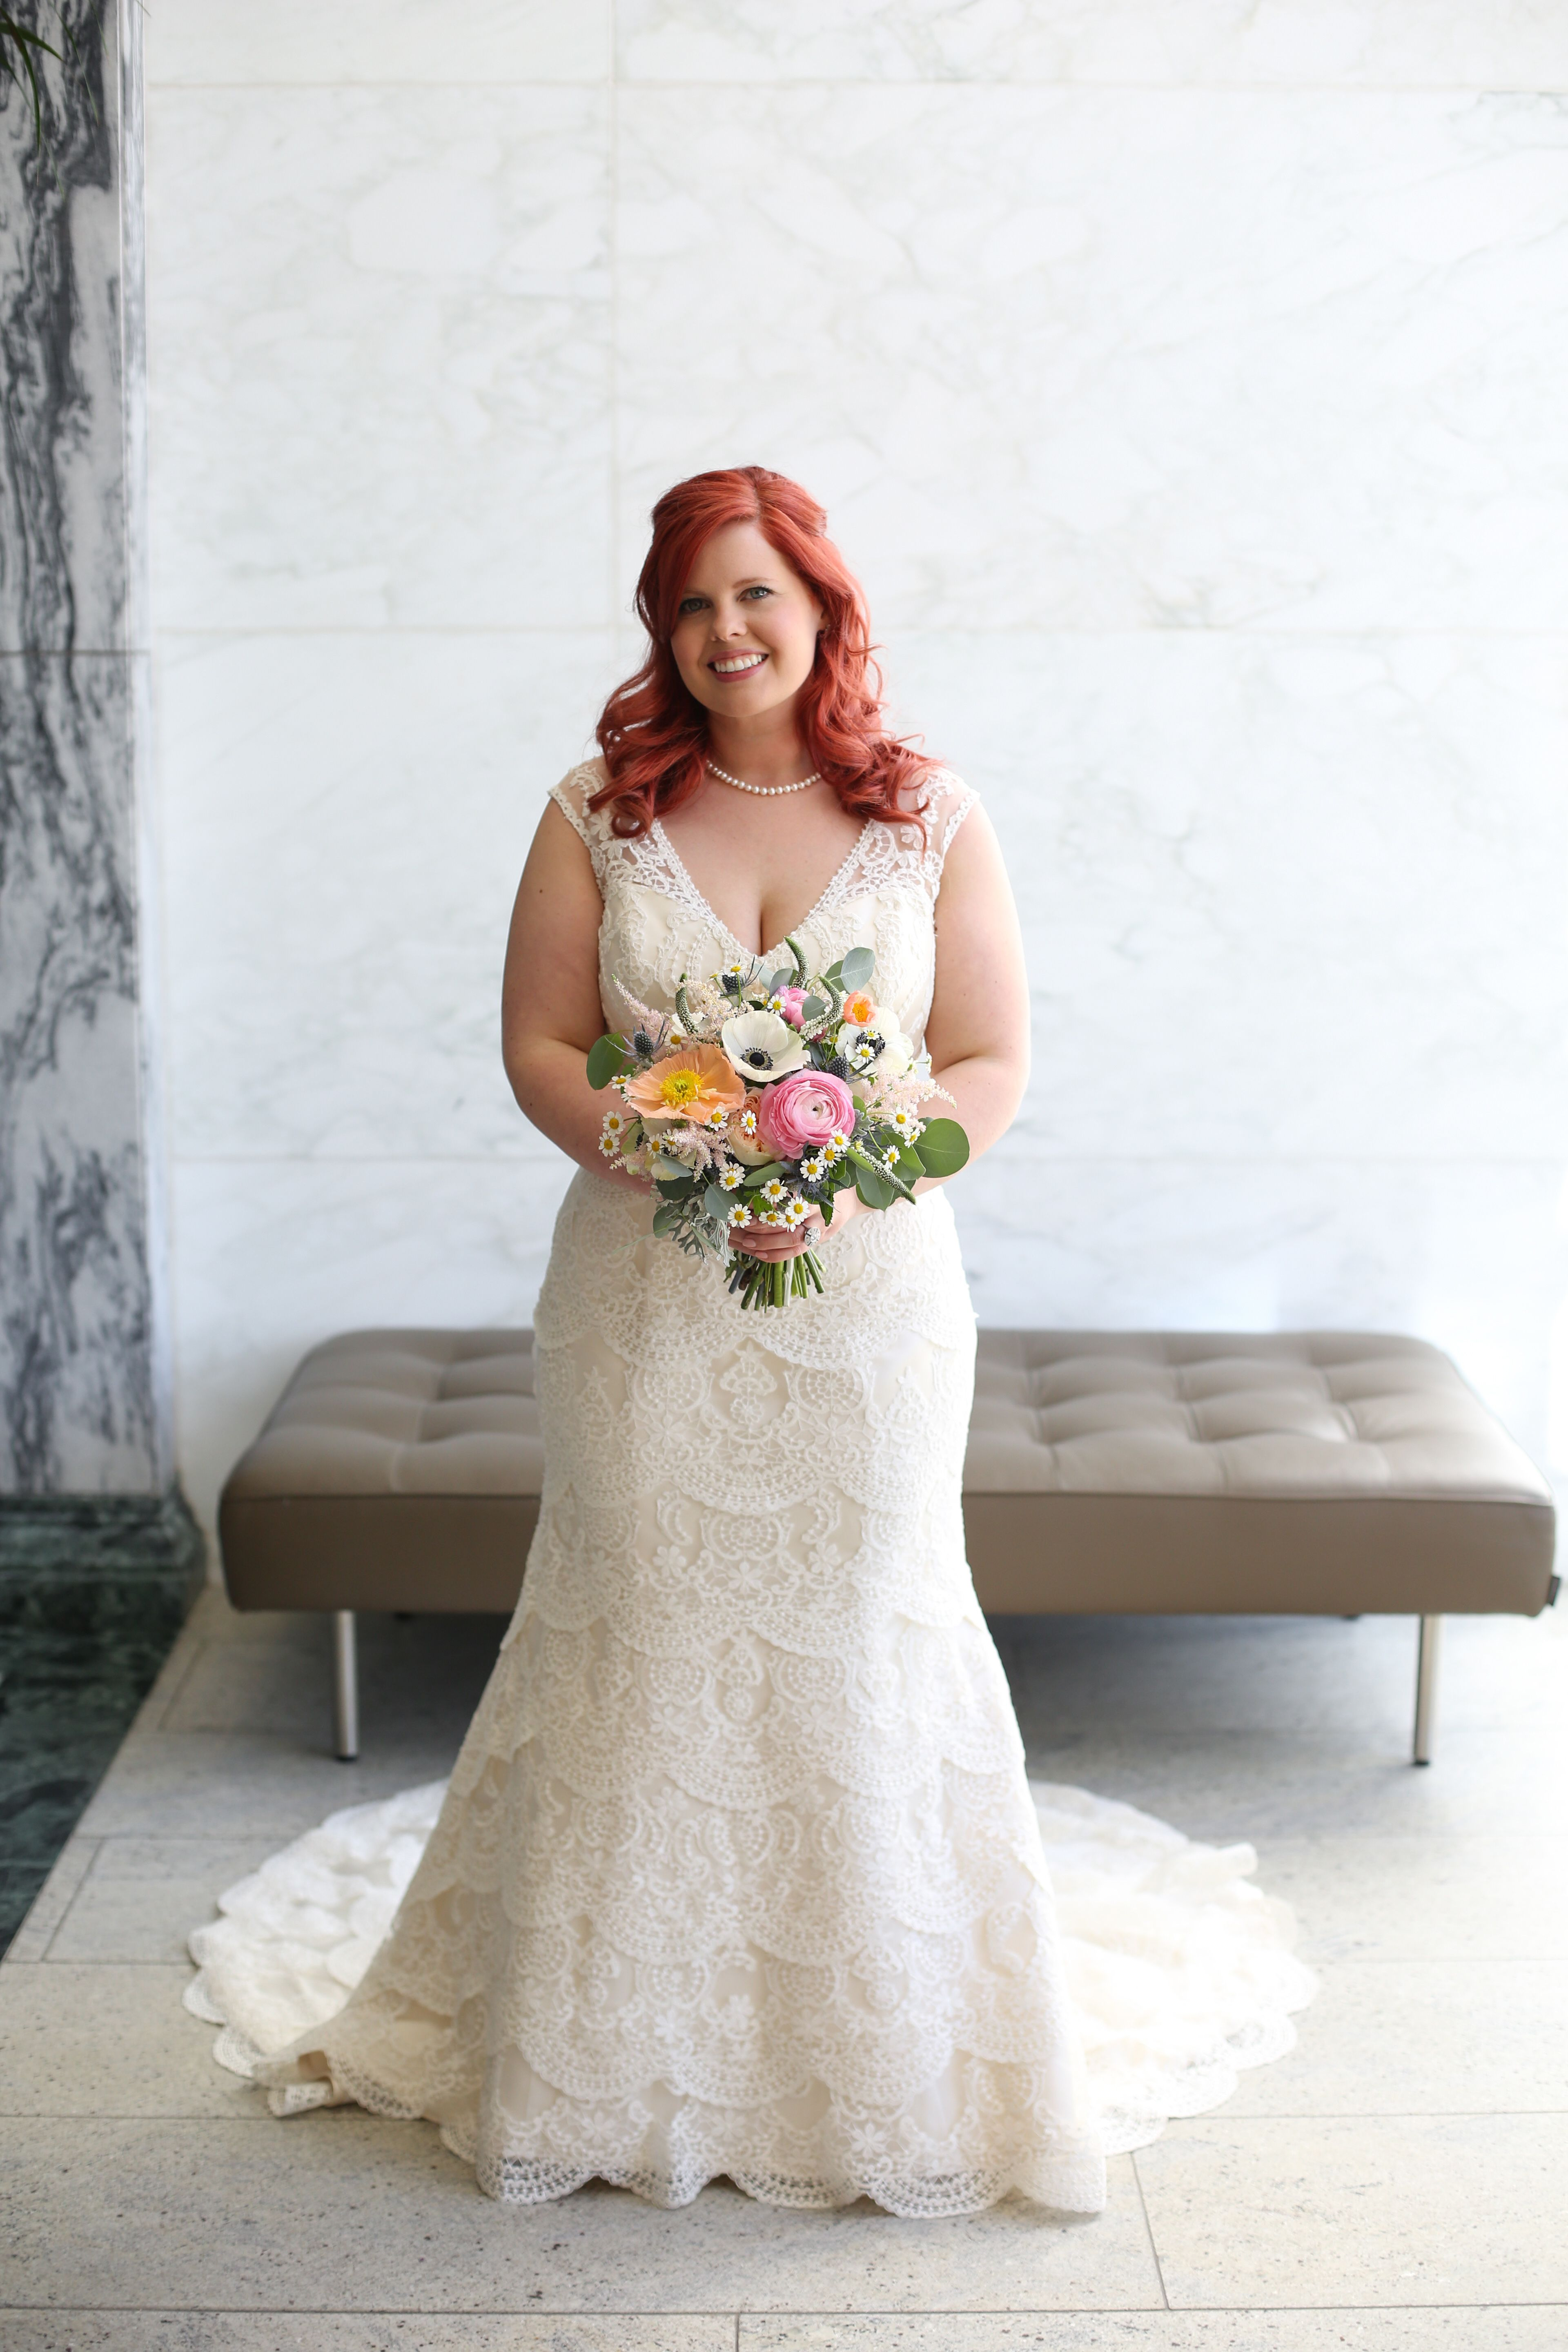 The beautiful bridal bouquet that I carried on my wedding day. The ...